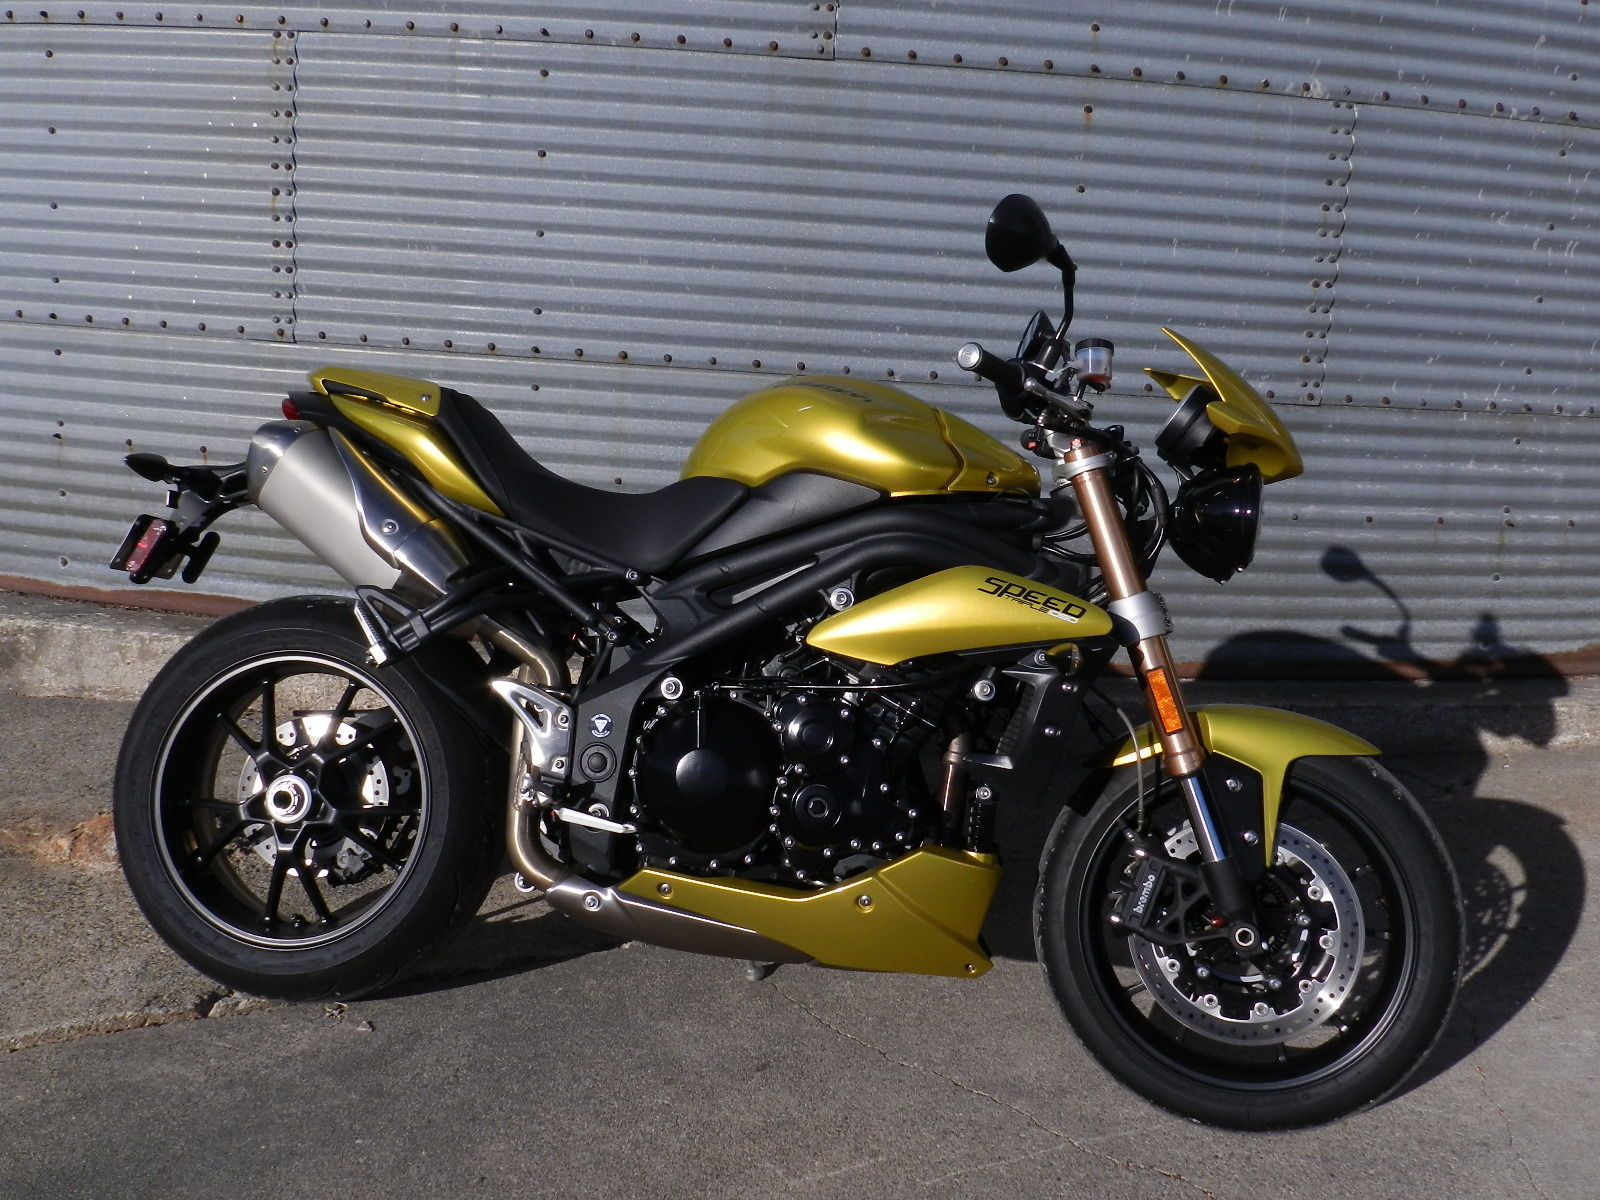 2013 triumph speed triple sulphur yellow. Black Bedroom Furniture Sets. Home Design Ideas